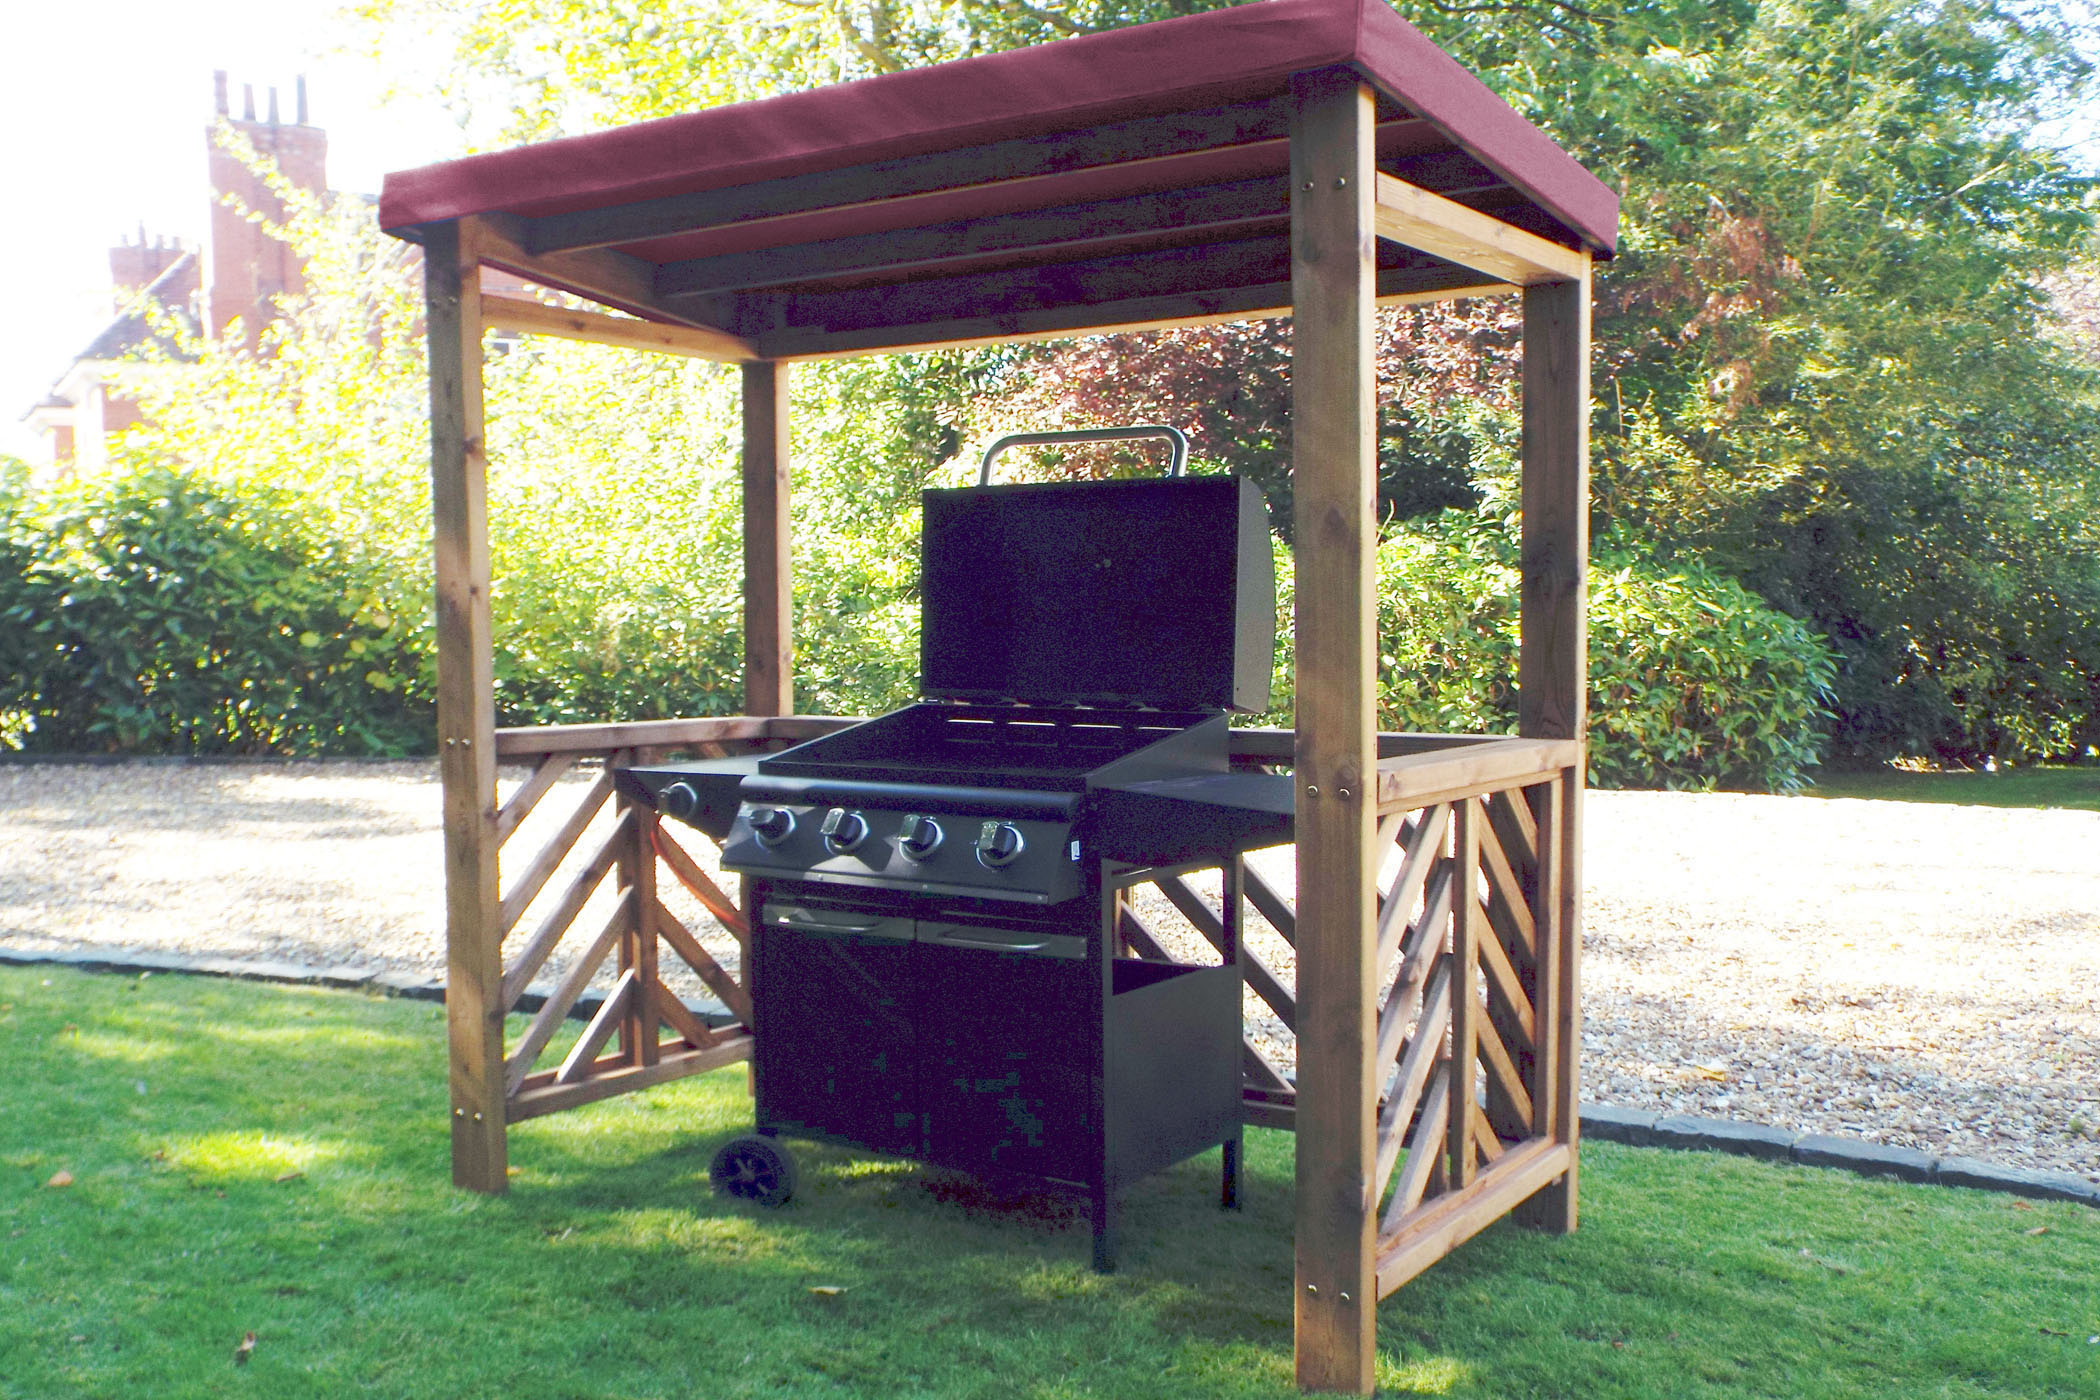 Buy Now Wooden Bbq Shelter Garden Bbq Shelter